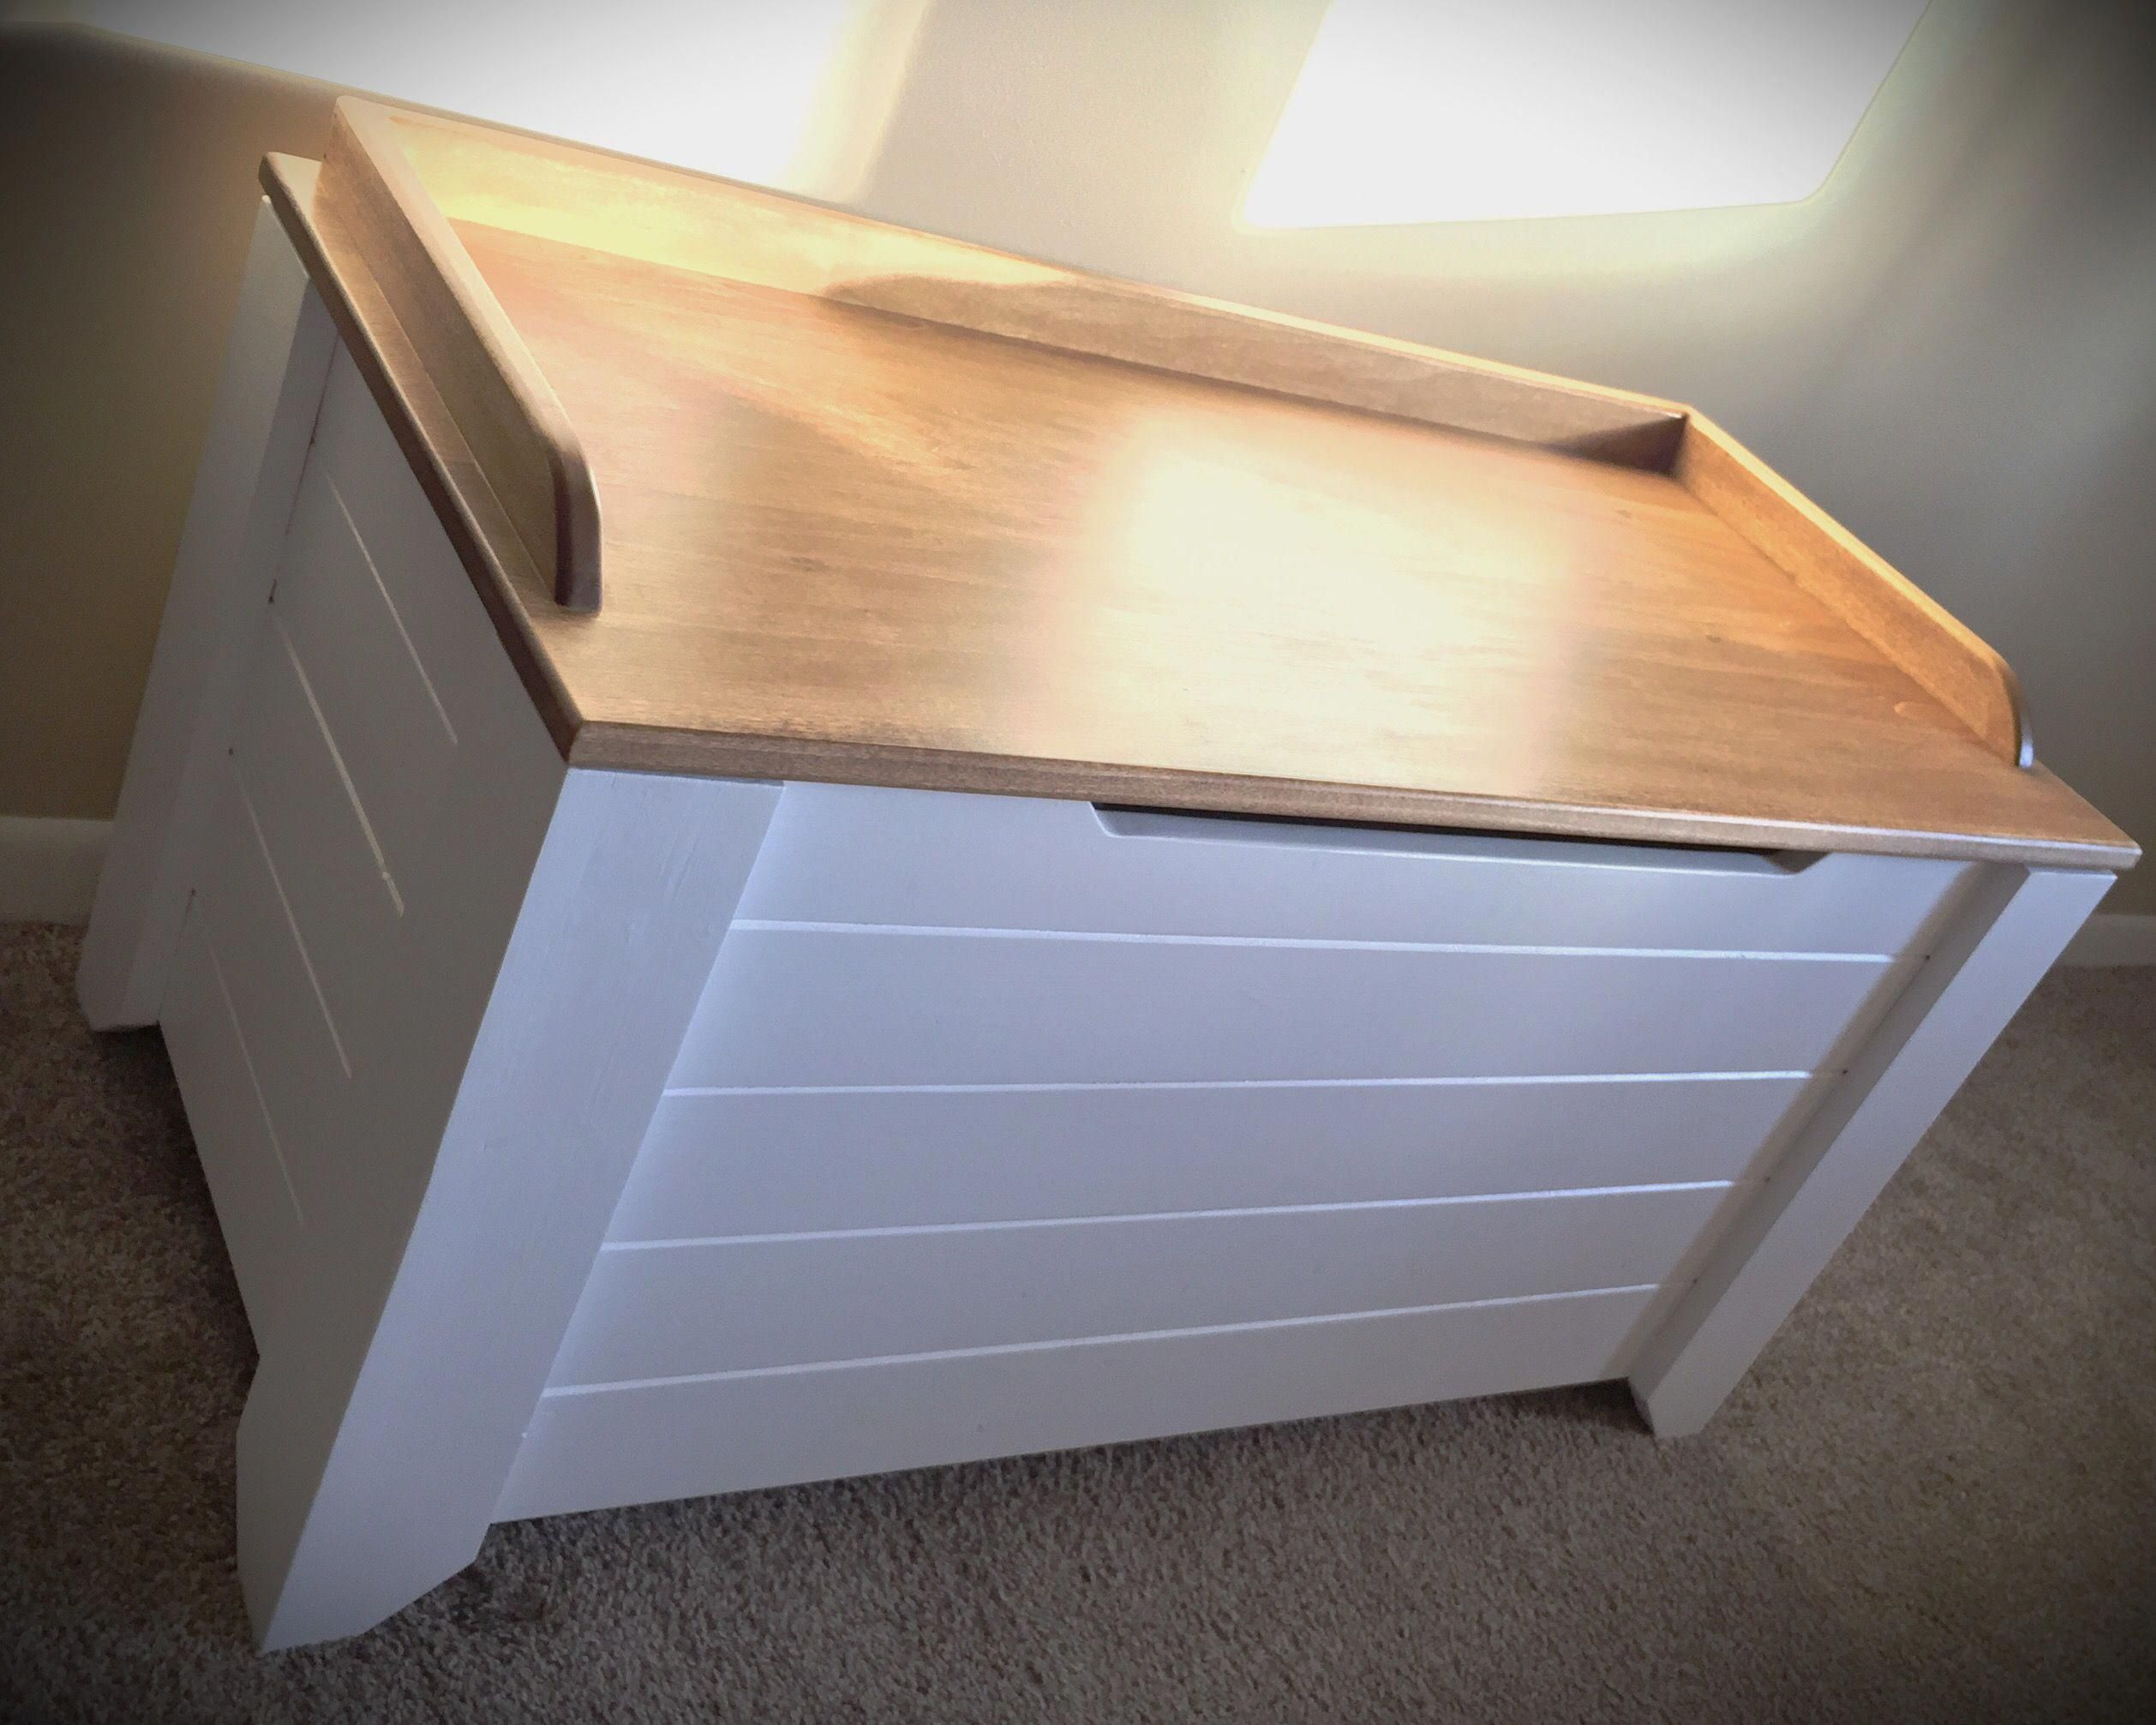 Farmhouse style toy box blanket chest diy projects